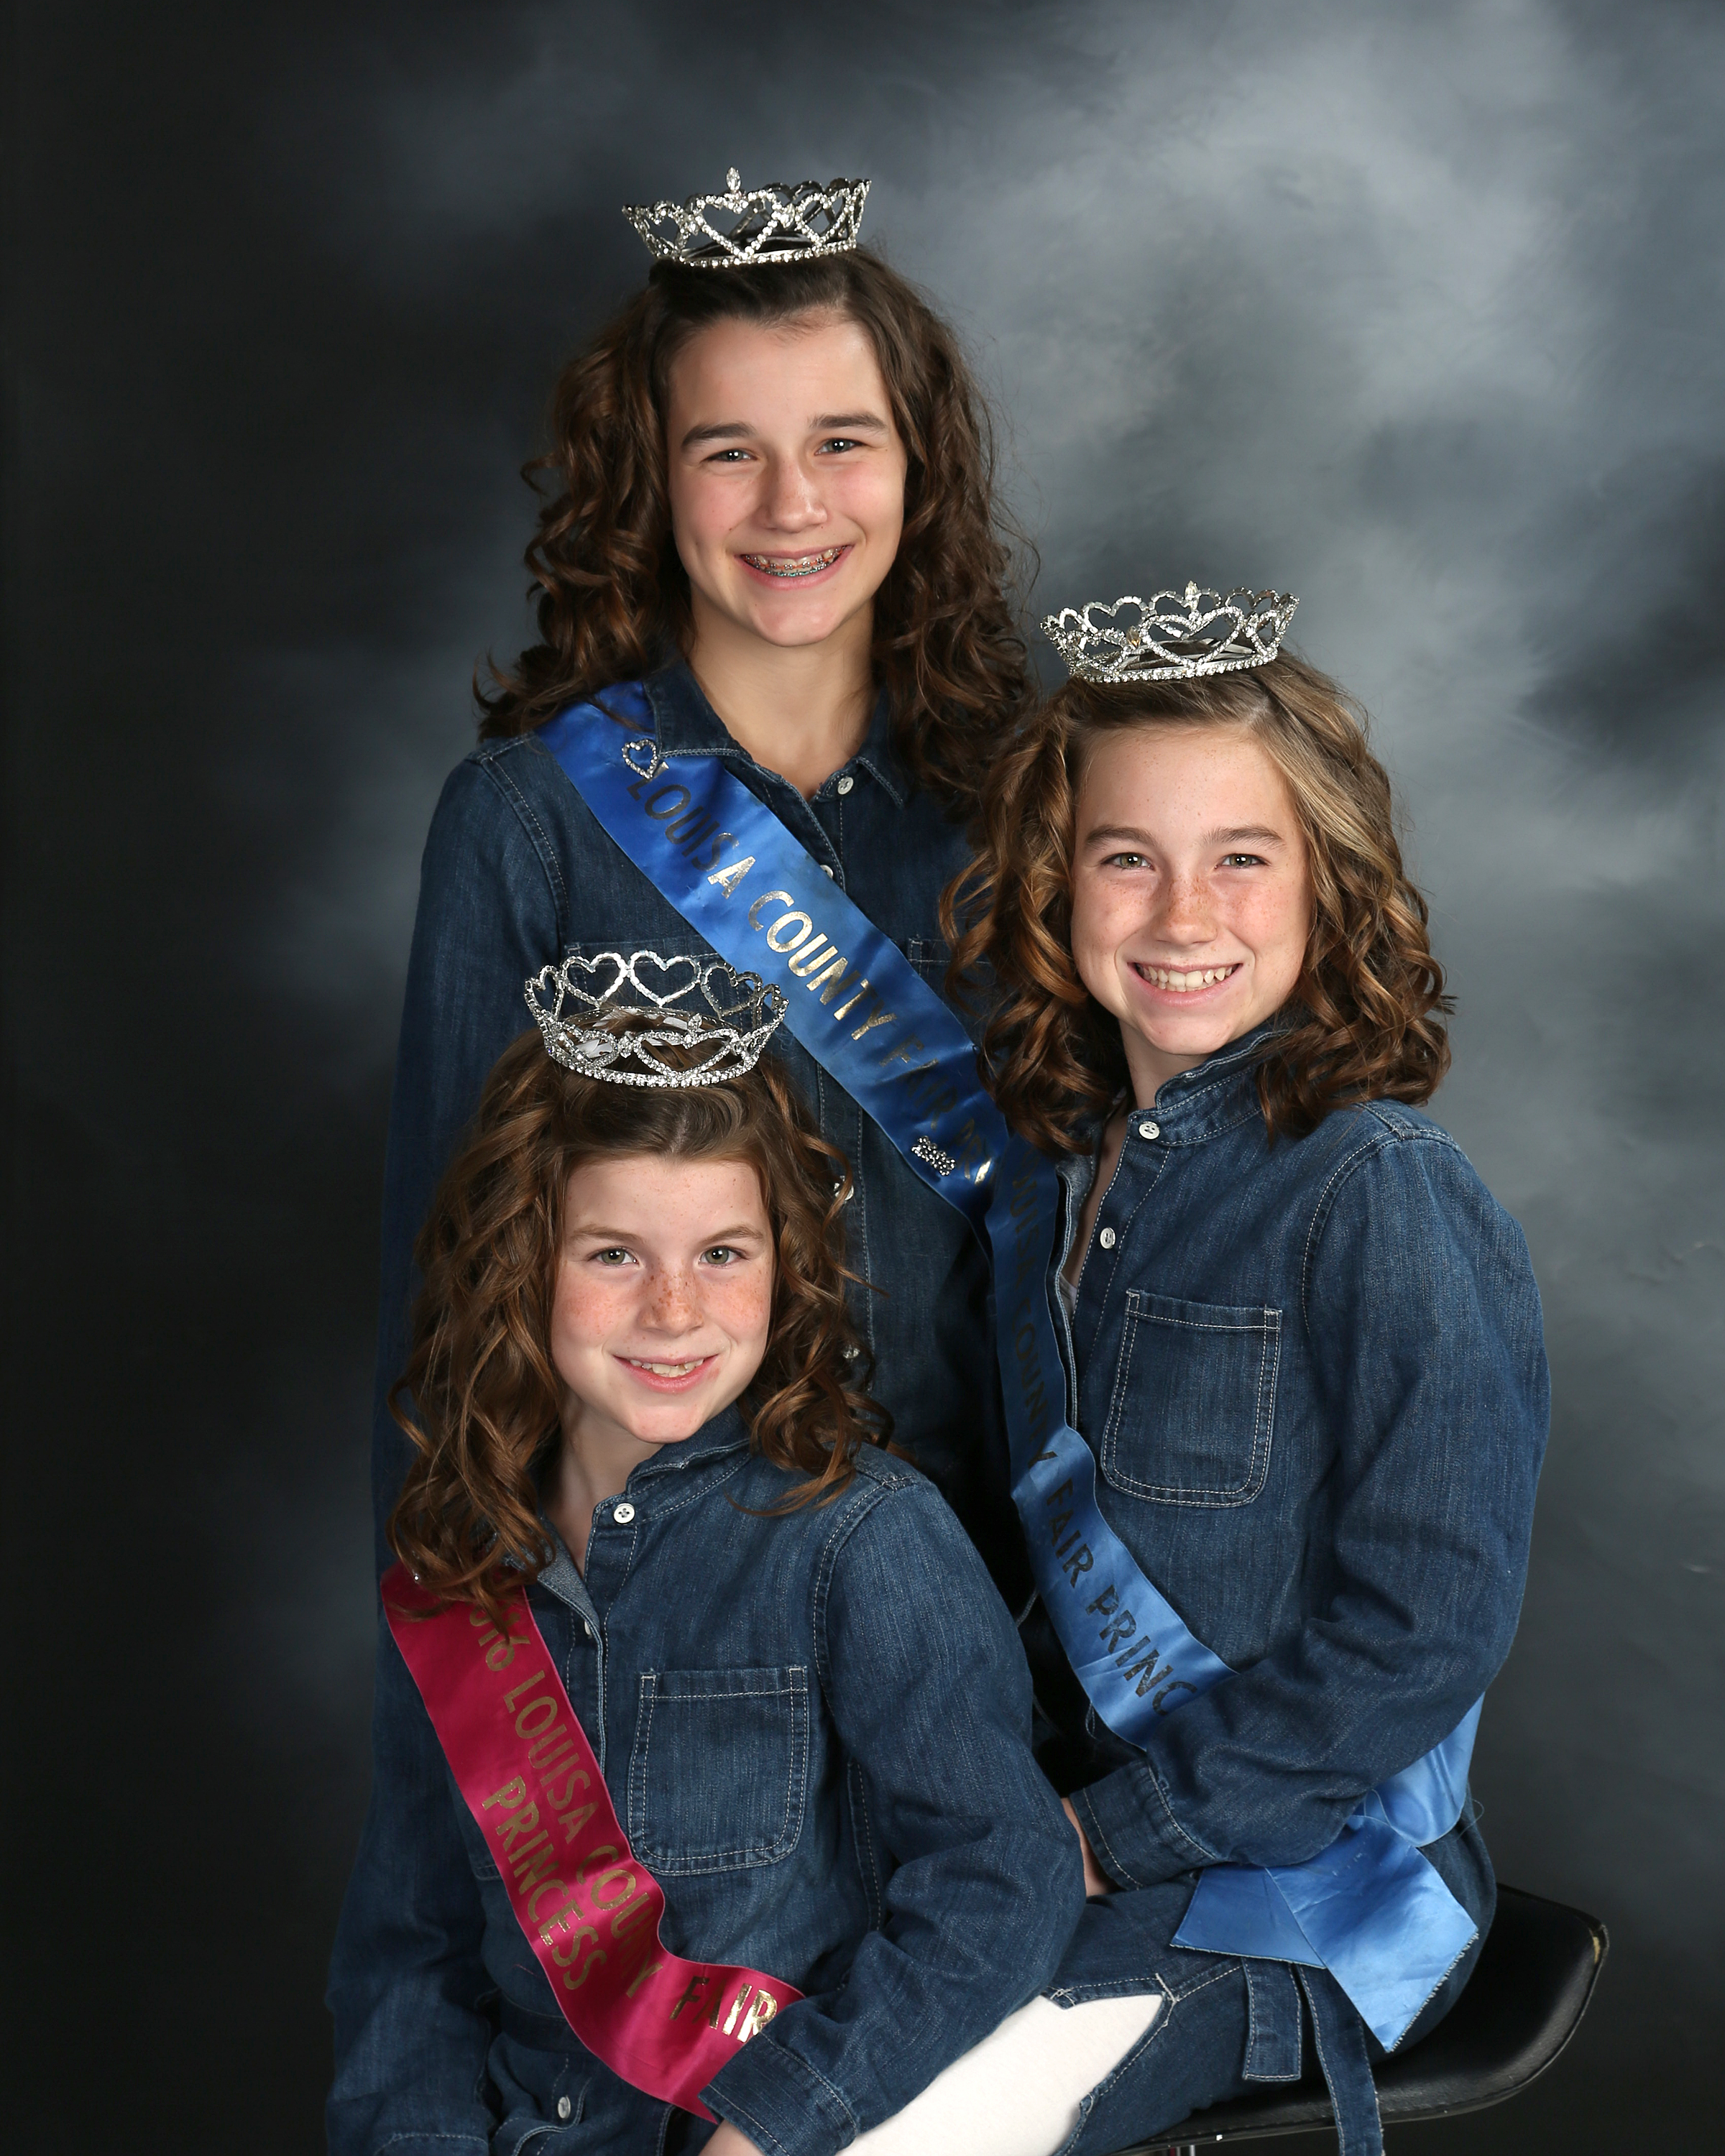 Three Princesses...